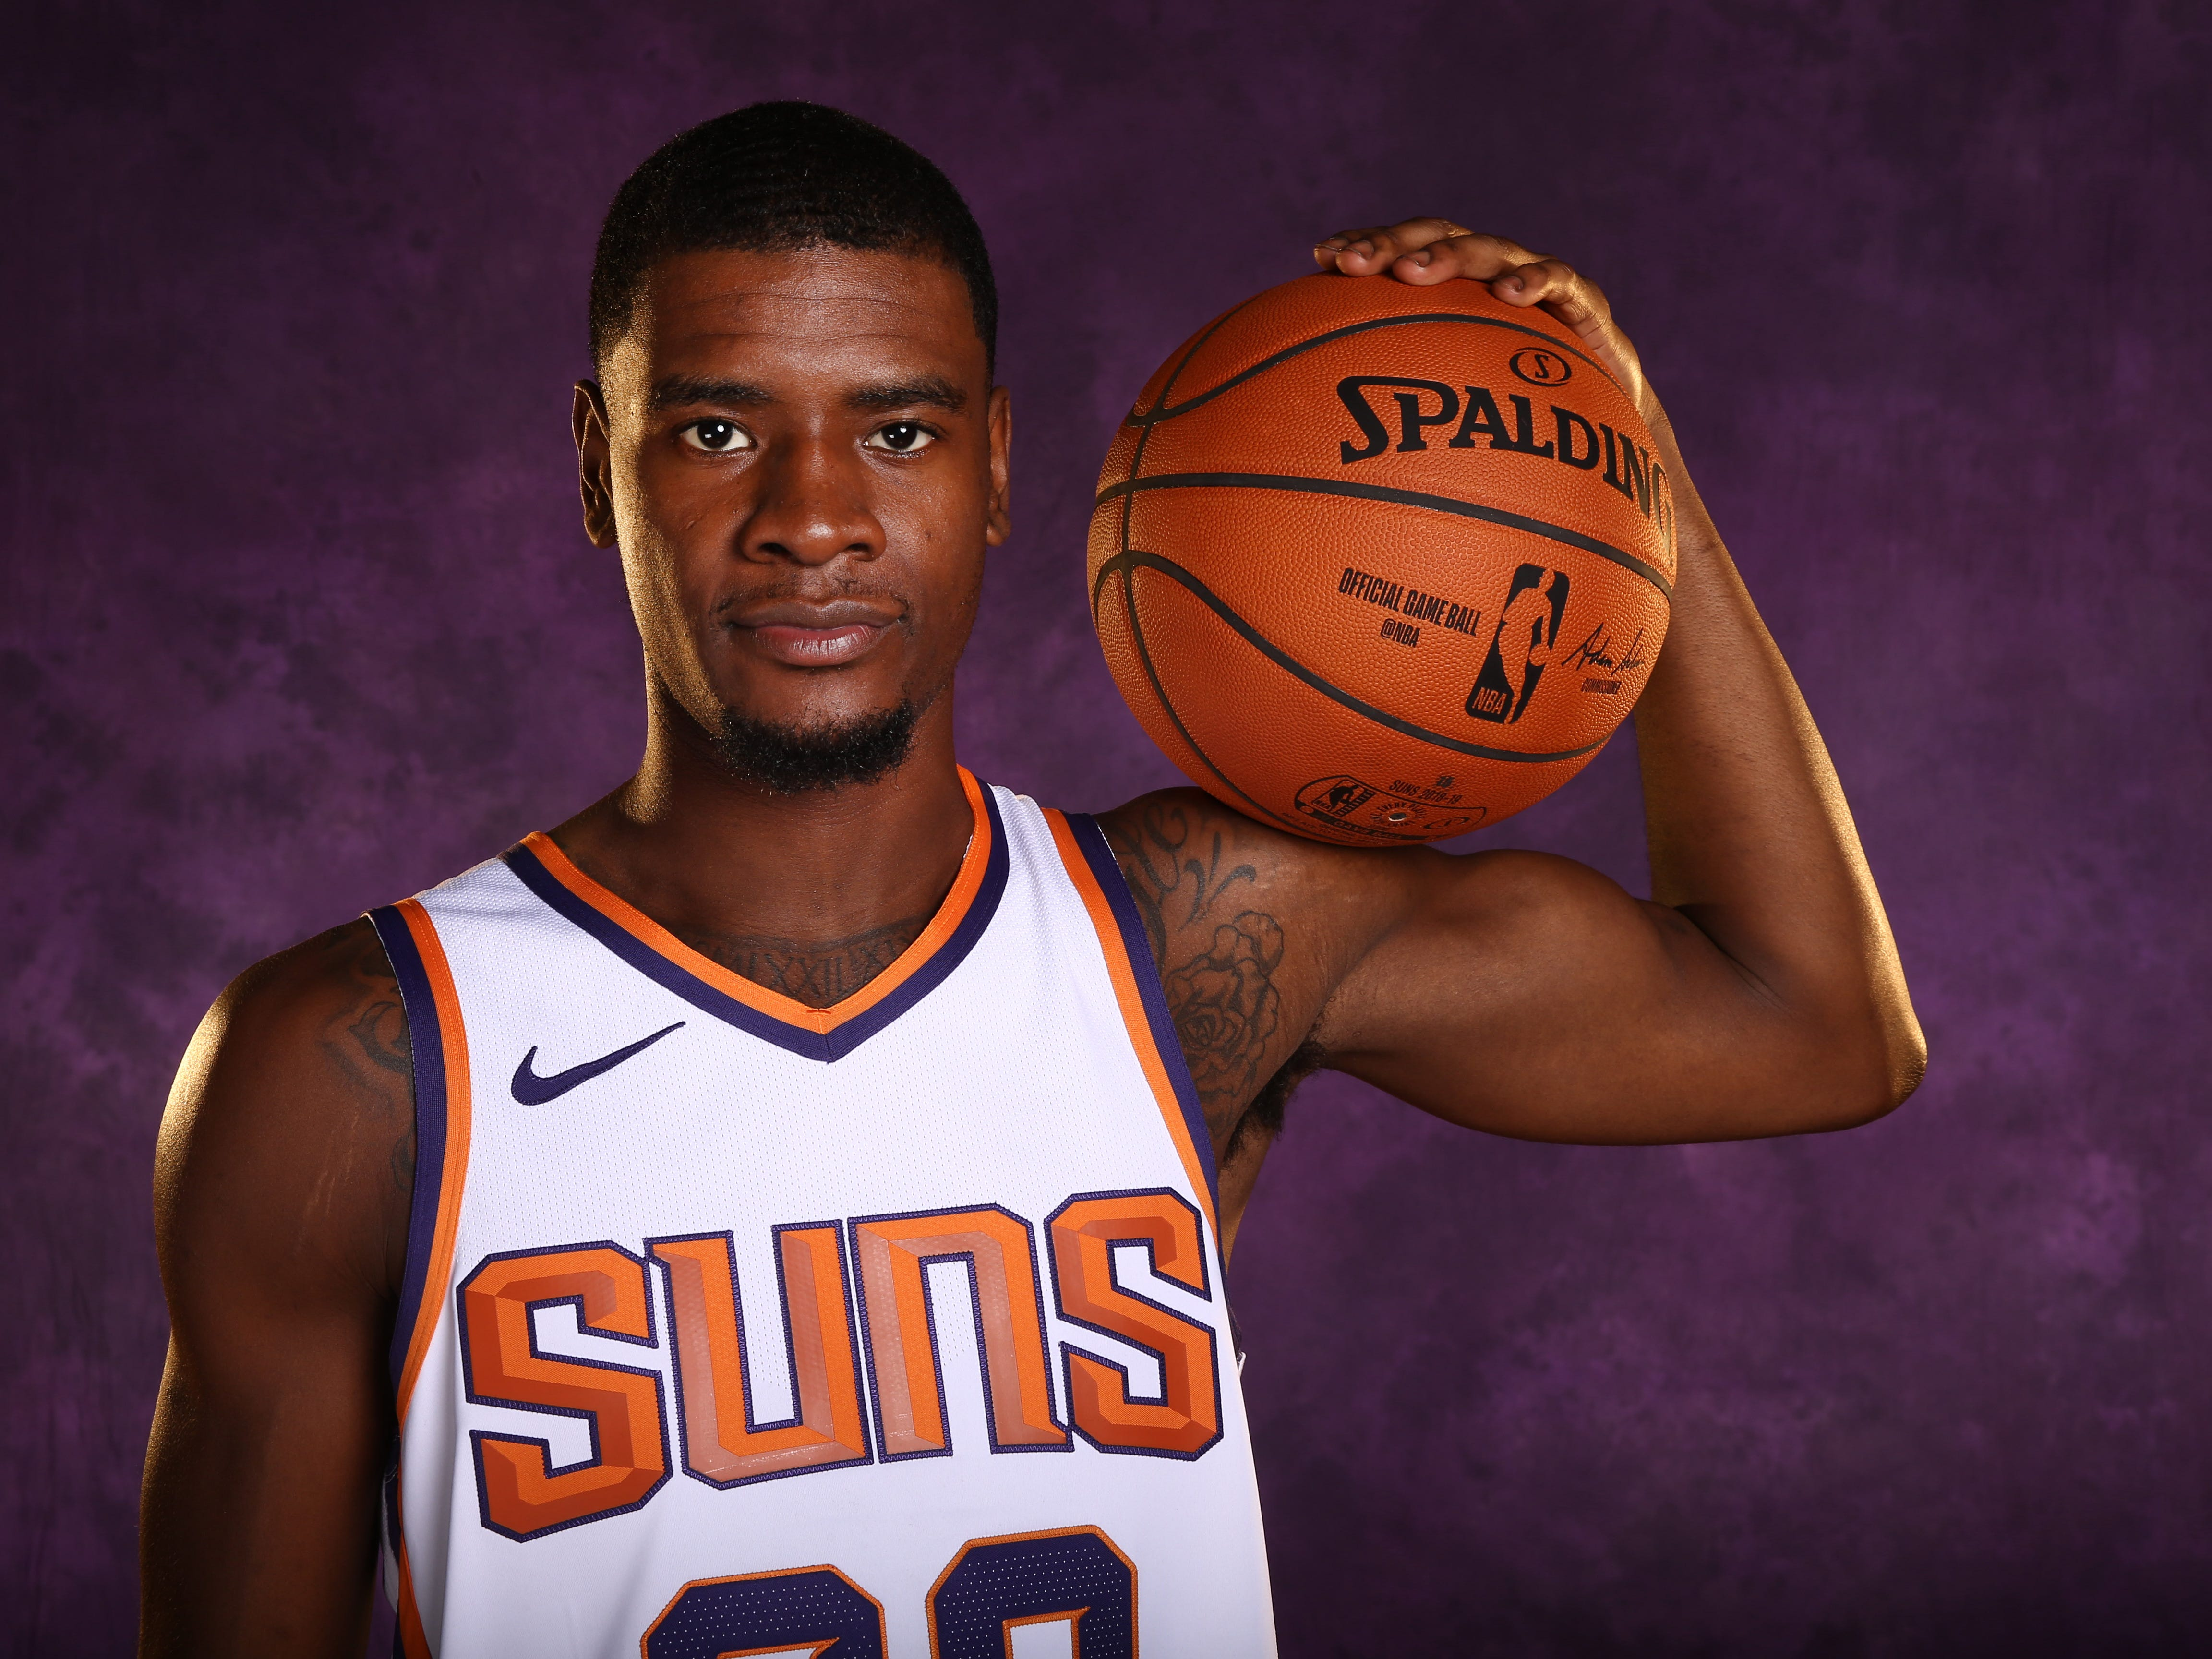 Phoenix Suns forward Josh Jackson during media day at Talking Stick Resort Arena on Aug. 21, 2018, in Phoenix, Ariz.